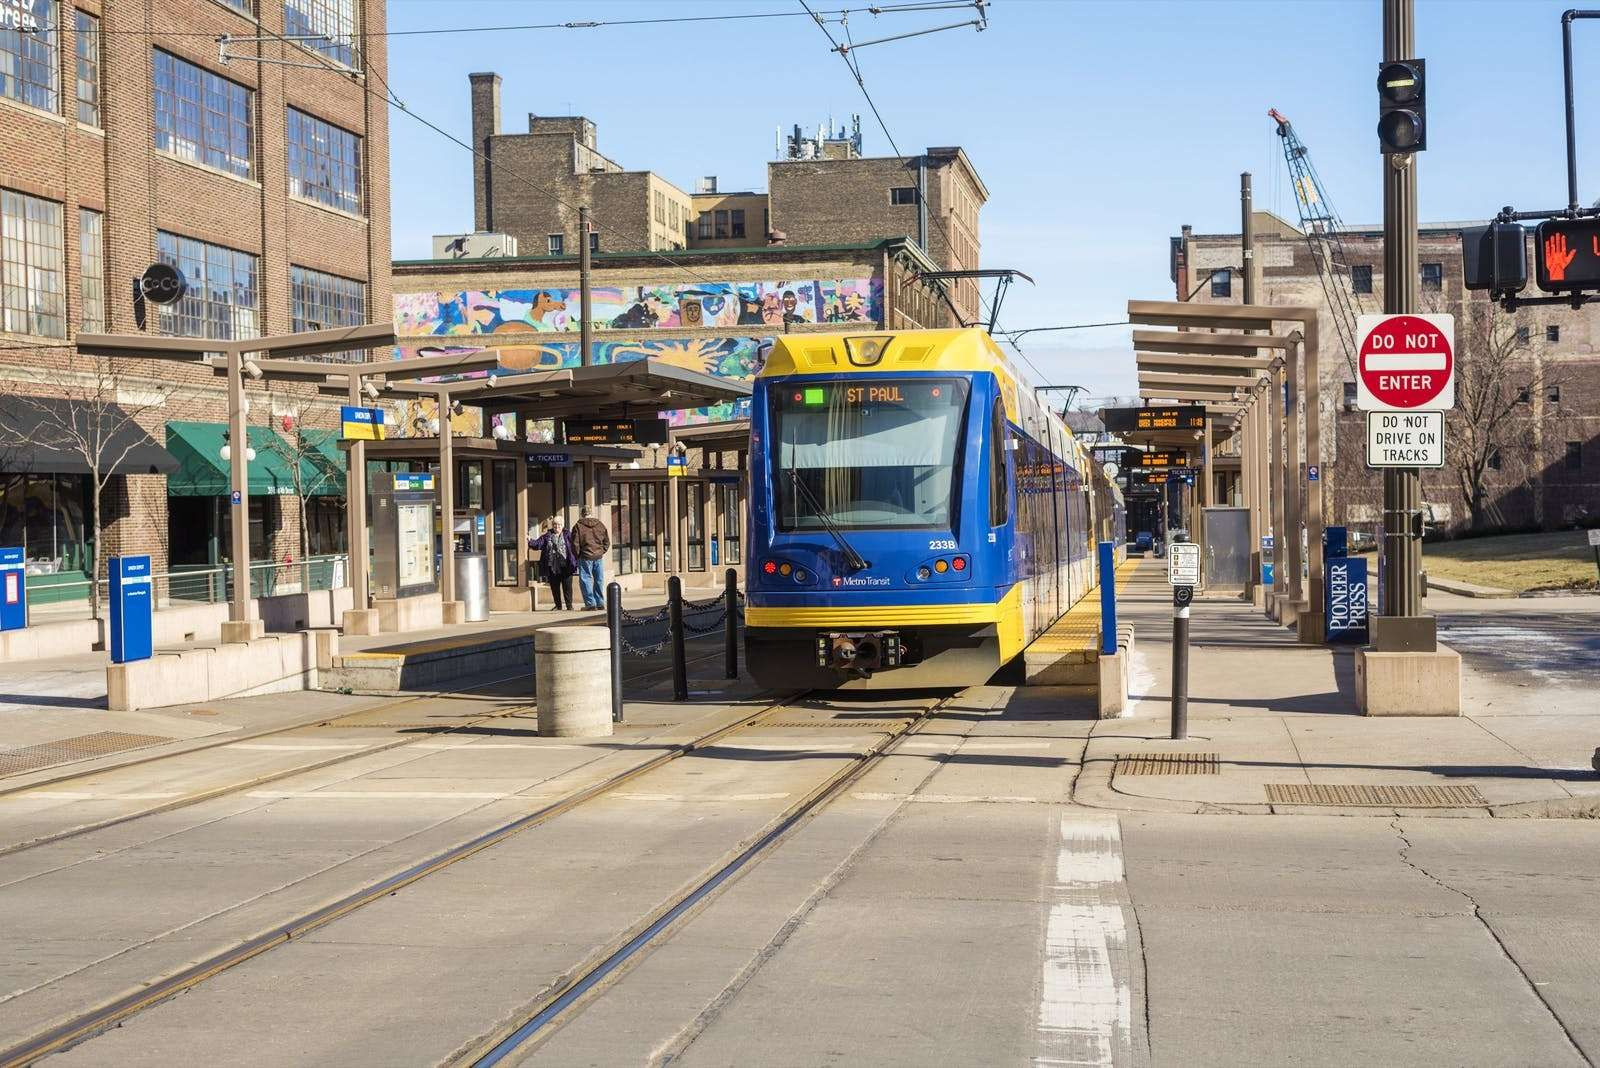 The 30 U.S. Cities With the Best Public Transit - 21. St. Paul, Minnesota Transit Score: 47.4 Population: 285,068 St. Paul's Metro transit carries people from one end of the city that abuts Minneapolis to the other. ©Ben Harding / Shutterstock.com